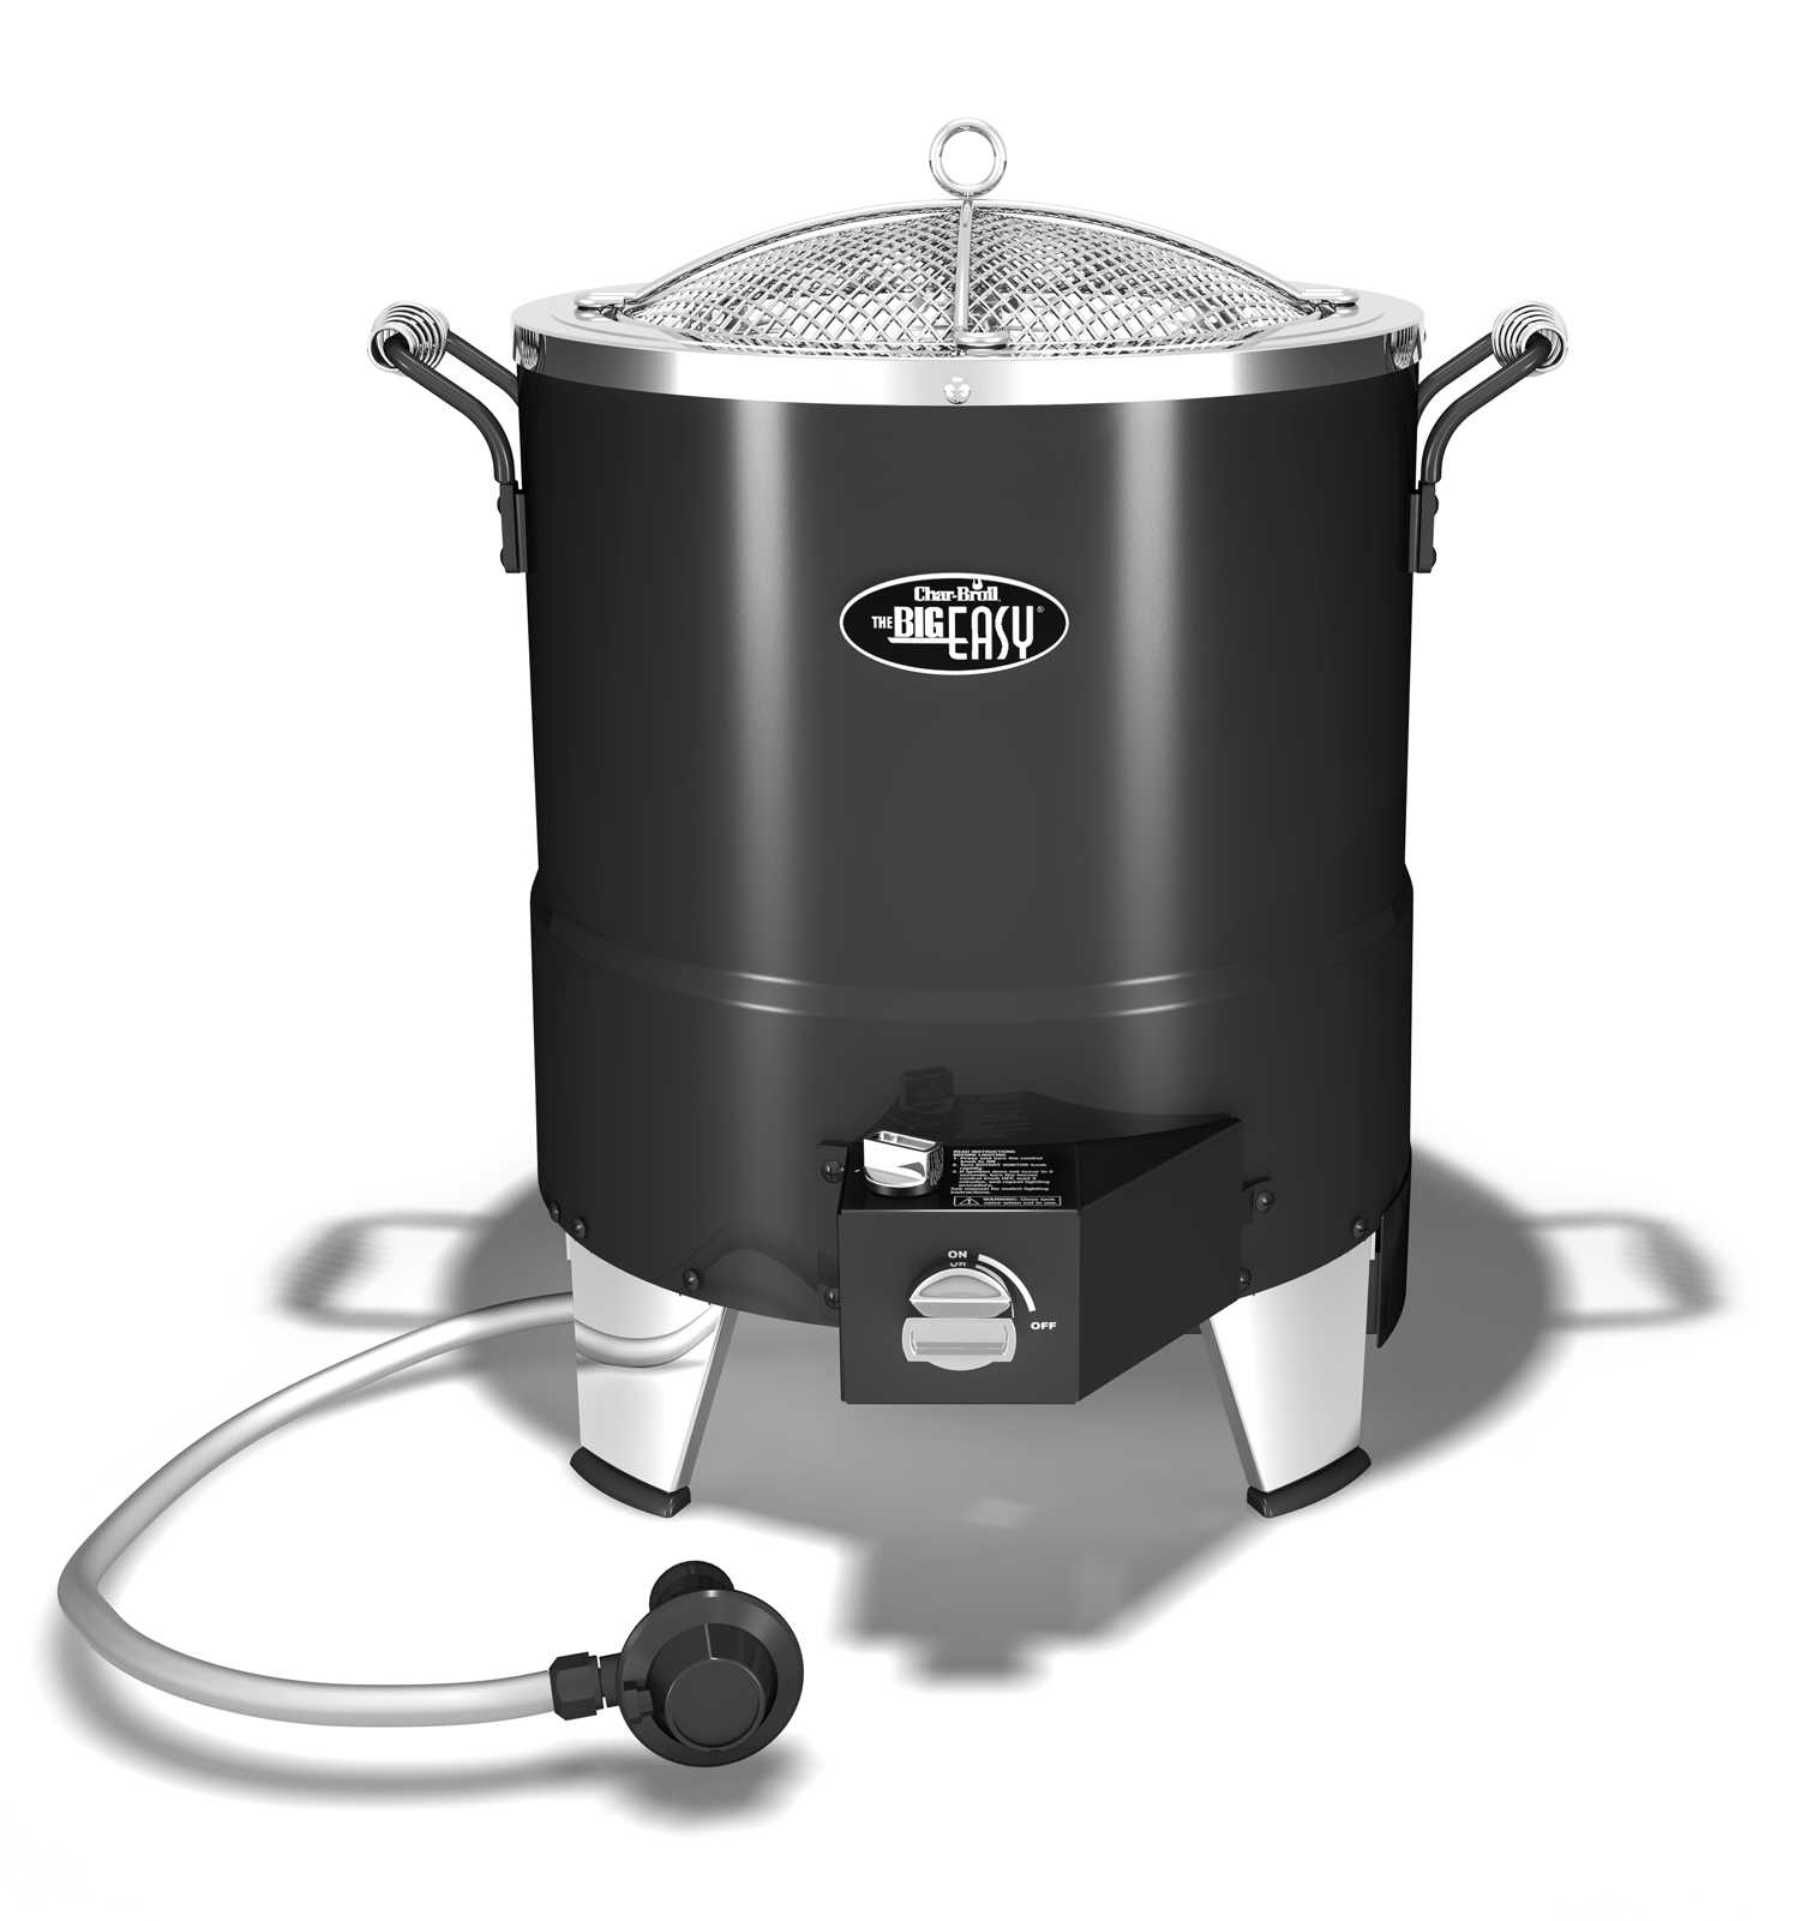 CharBroil TRUInfrared The Big Easy Oilless Turkey Fryer